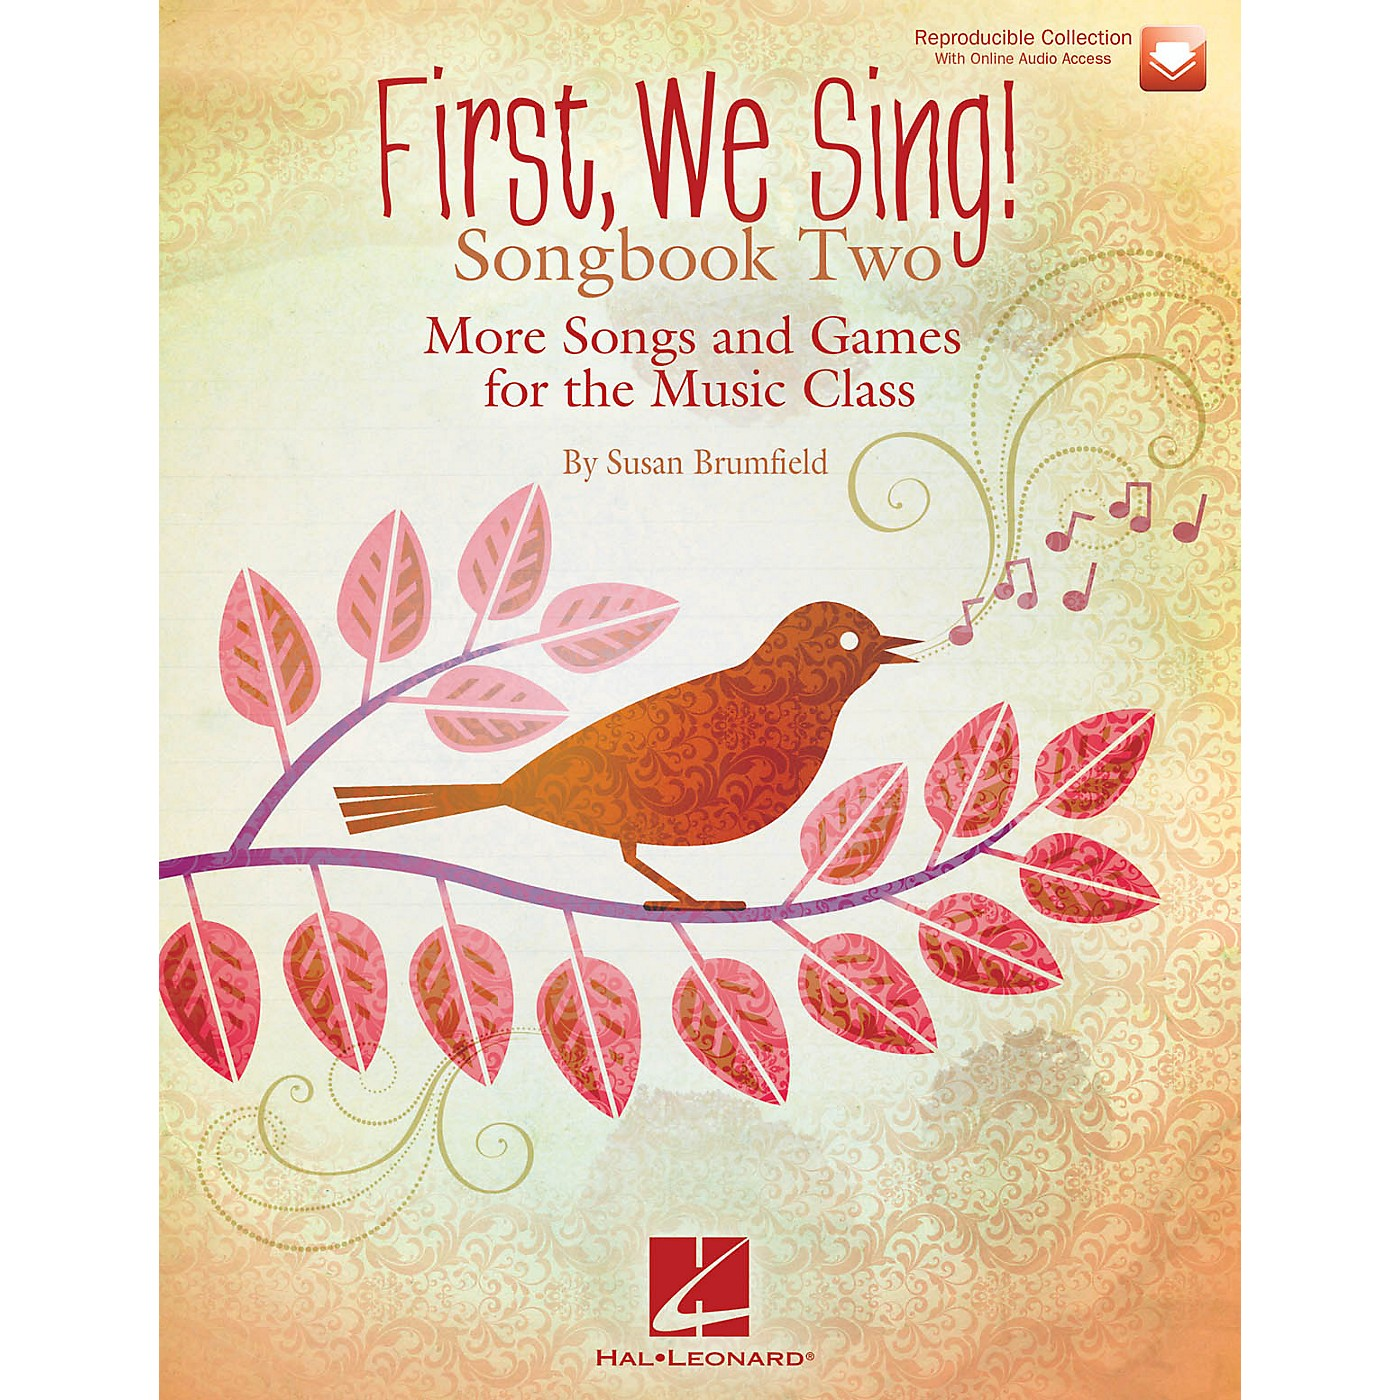 Hal Leonard First We Sing! Songbook Two Book and CD pak Composed by Susan Brumfield thumbnail